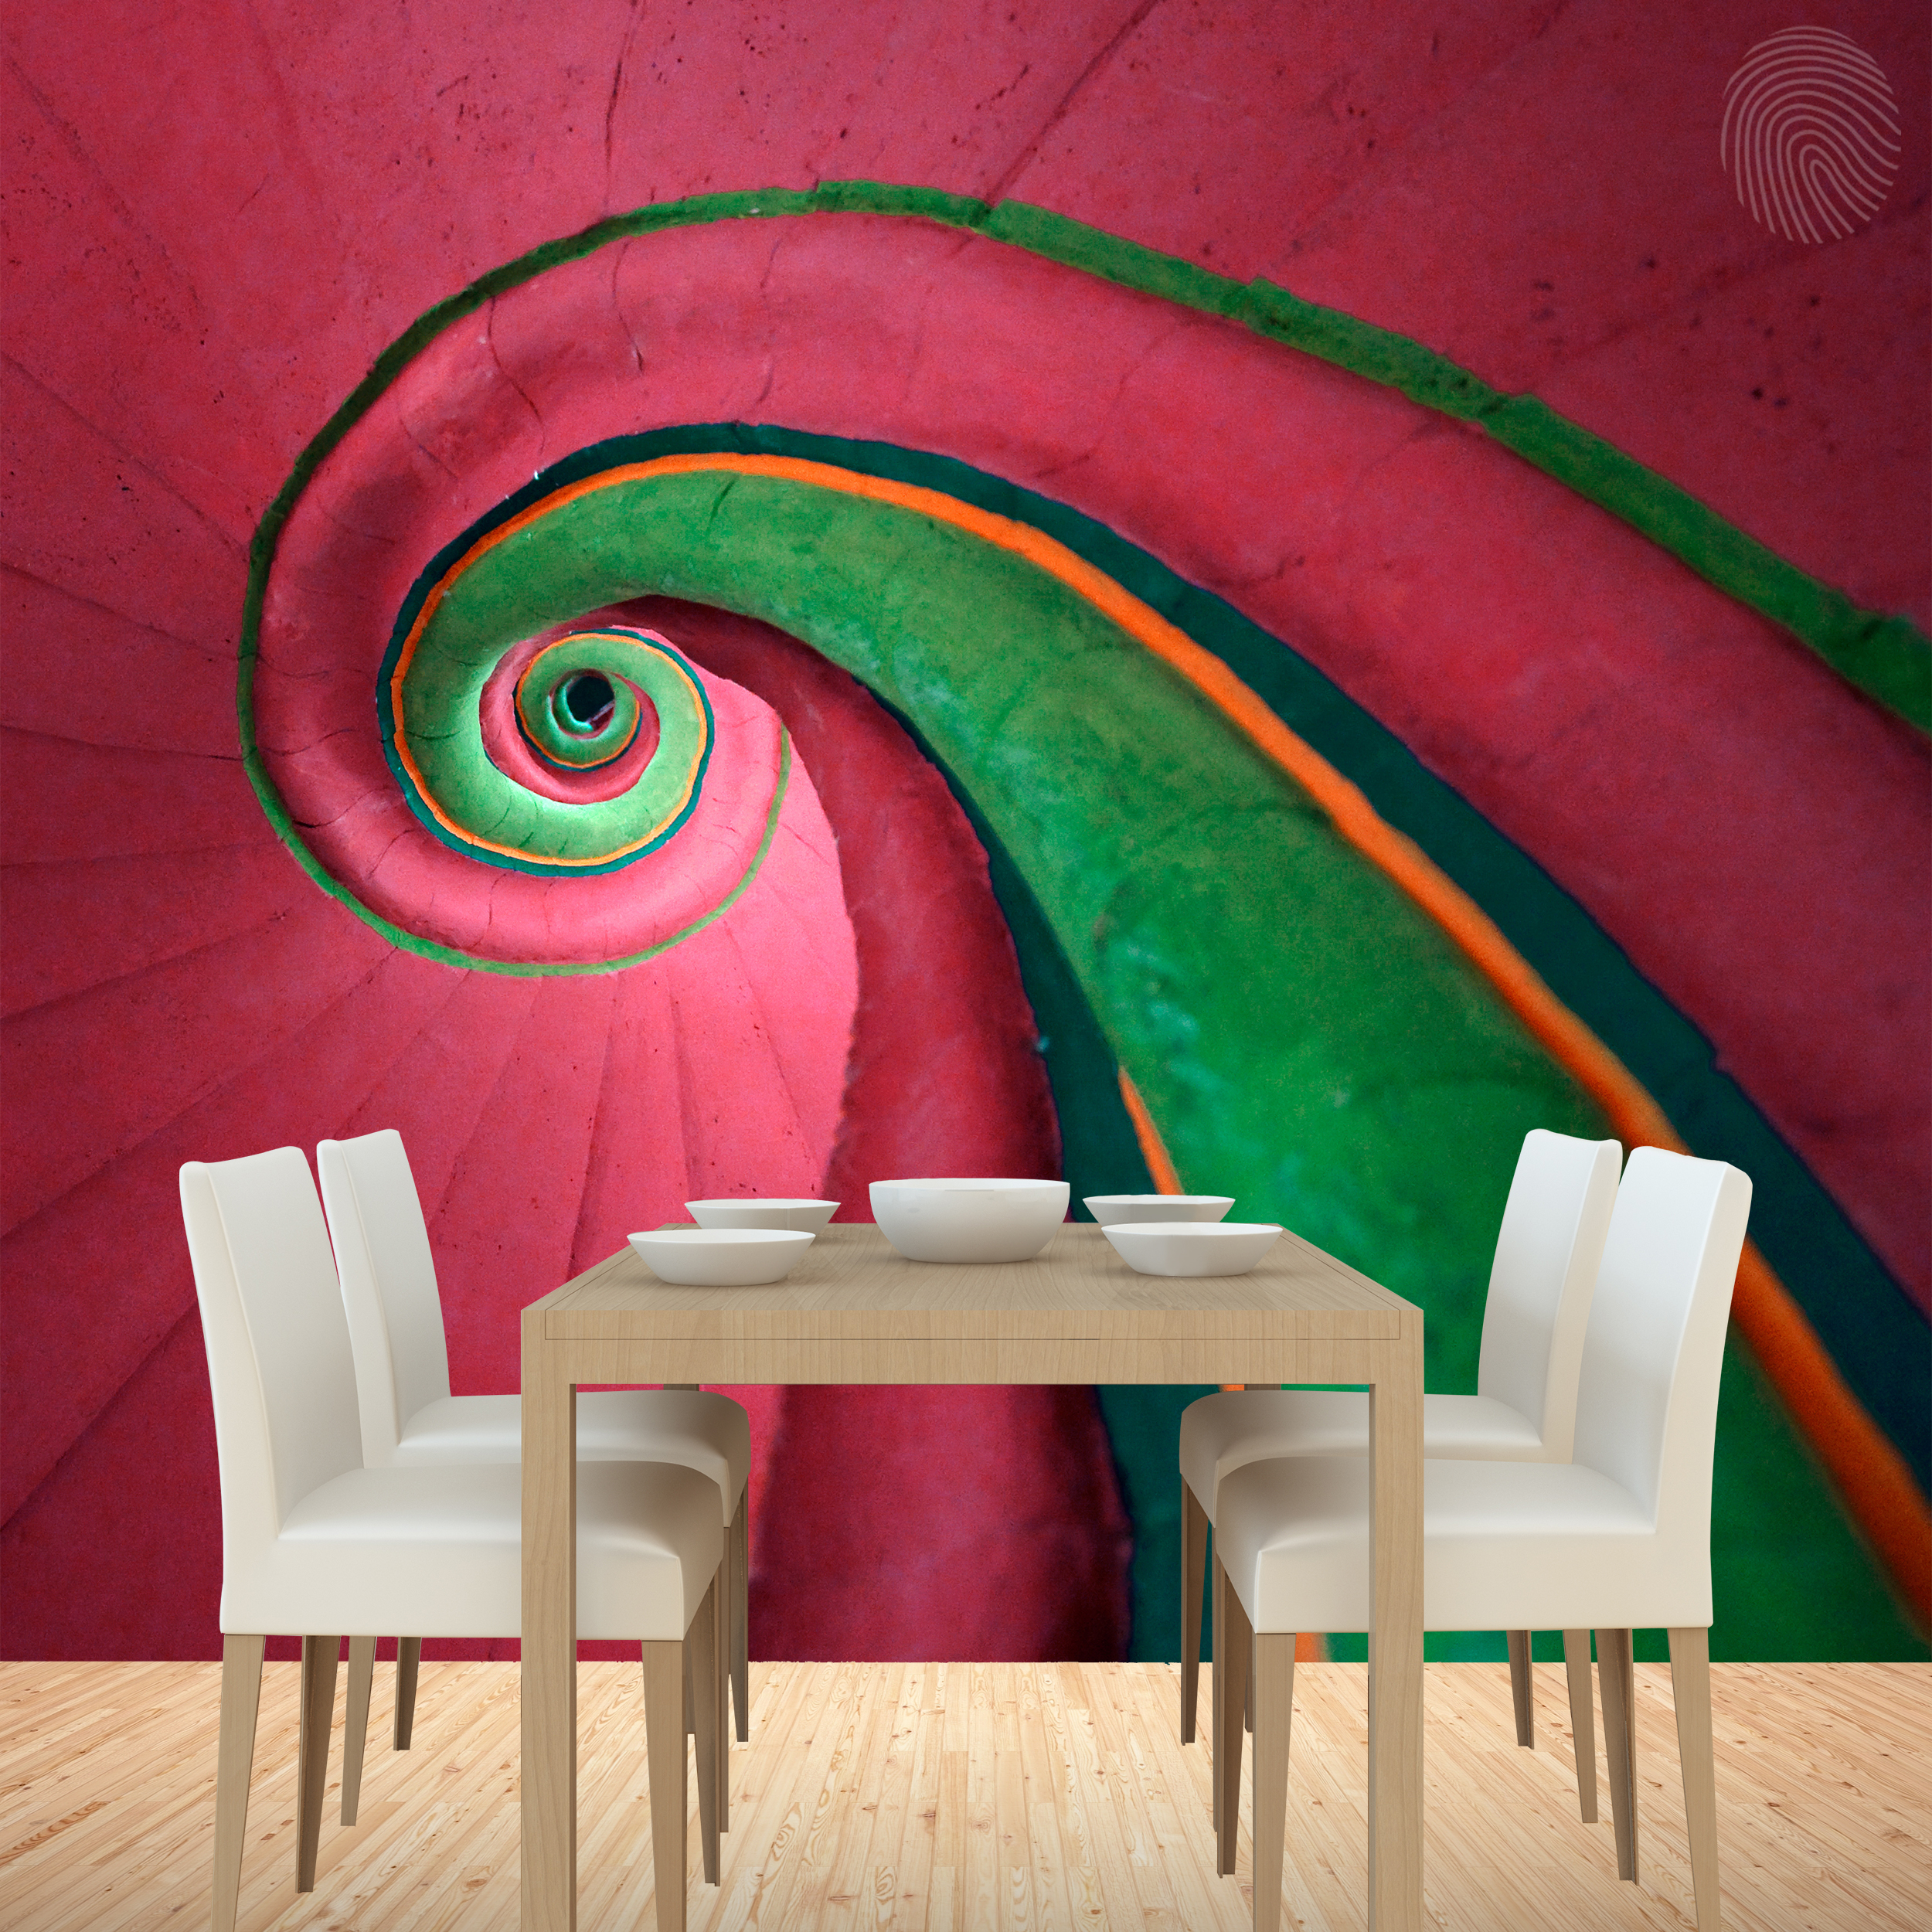 Get-lost-in-this-colourful-swirl-design-that-seems-to-just-keep-on-going-With-a-flash-of-green-swir-wallpaper-wp3006068